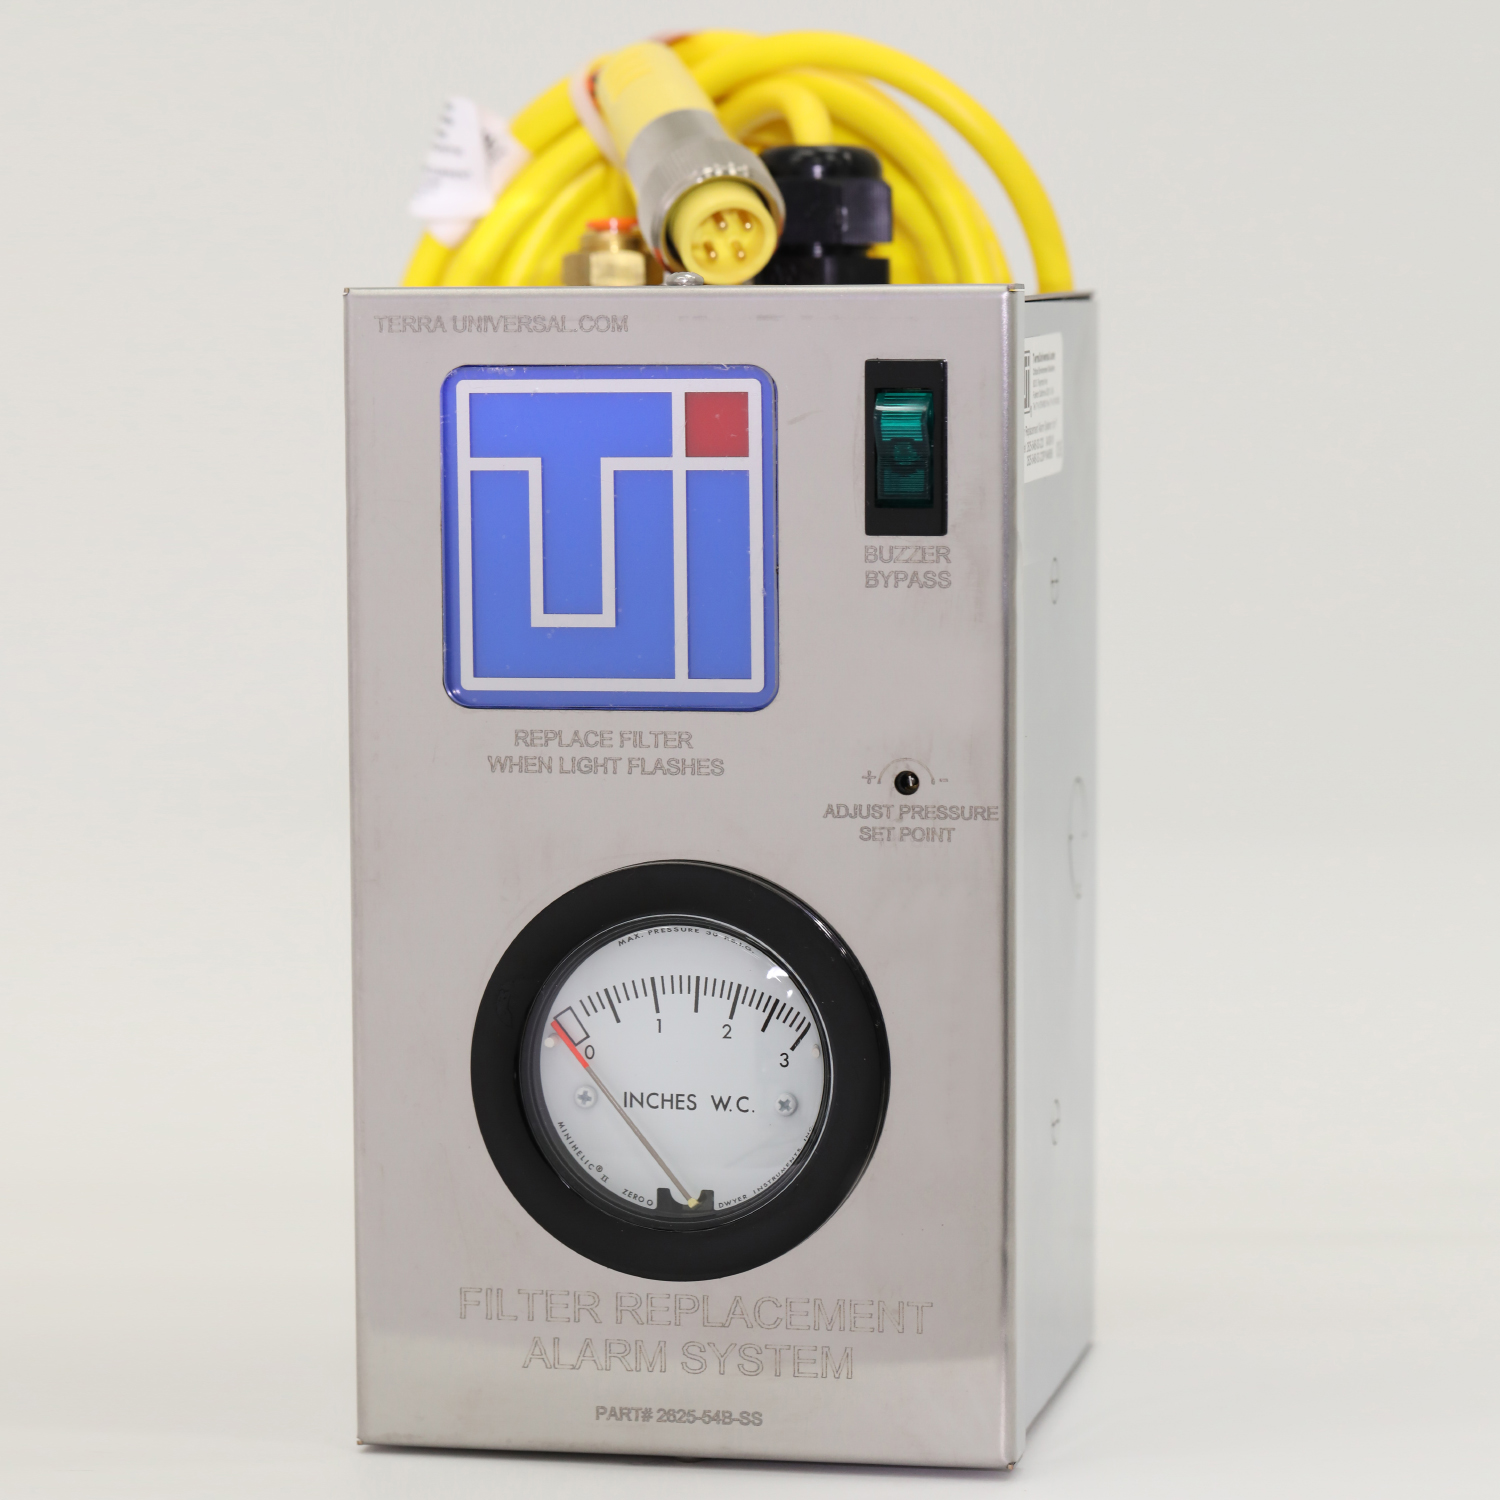 Filter replacement alarm system with minihelic gauge and yellow power cable